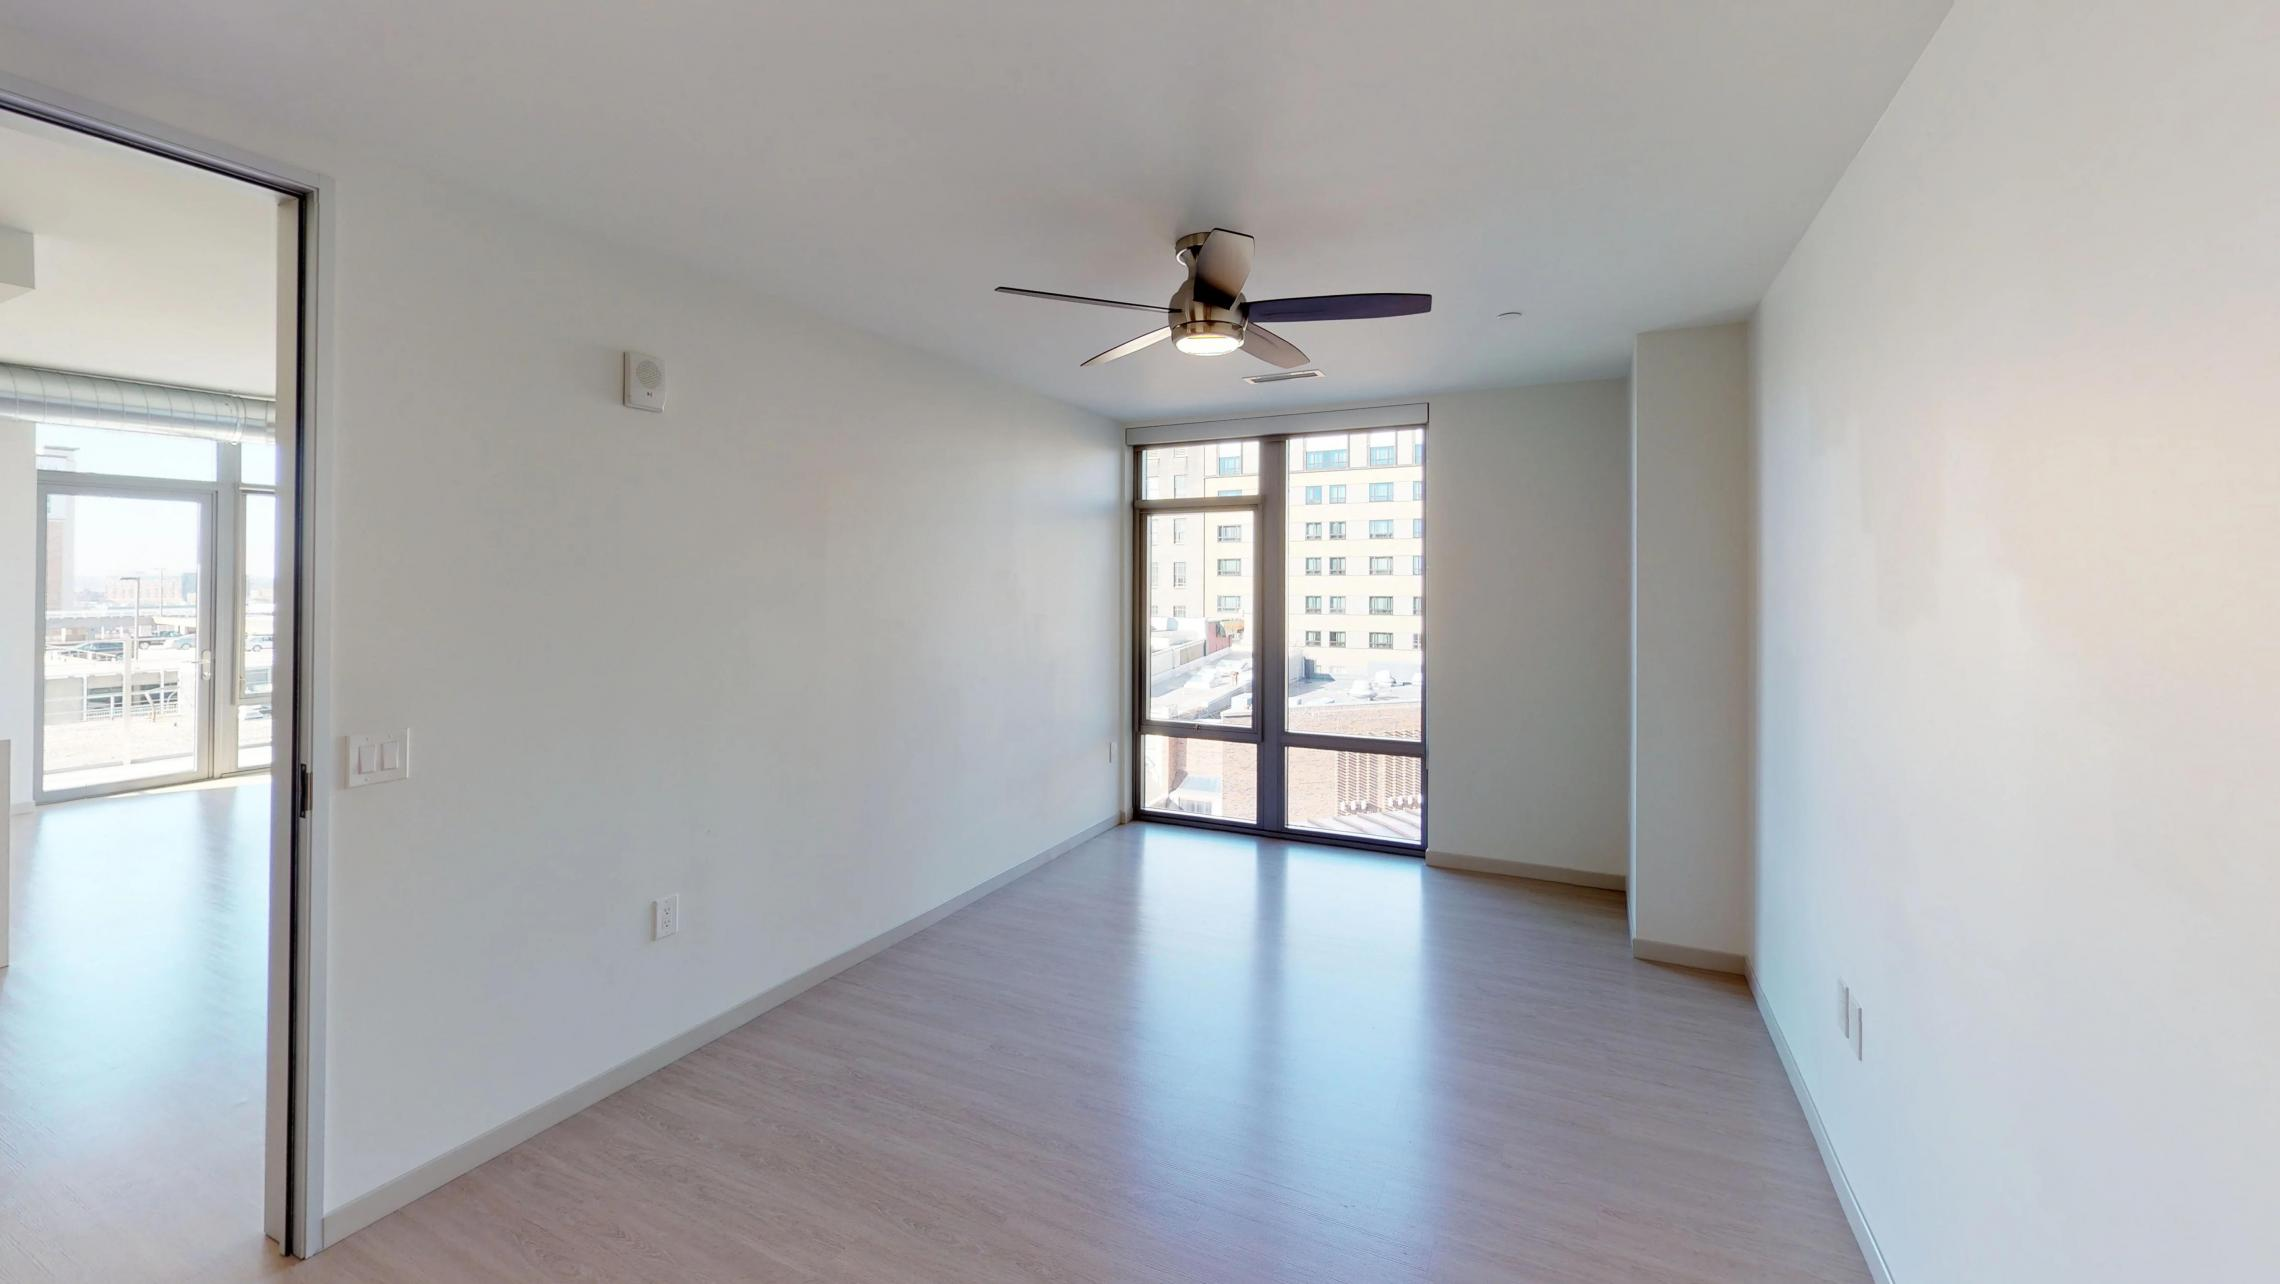 The-Pressman-Apartment-512-Two-Bedroom-Living-Room-View-Kitchen-Island-Downtown-Madison-Capitol-Balcony-Master-Bedroom.jpg